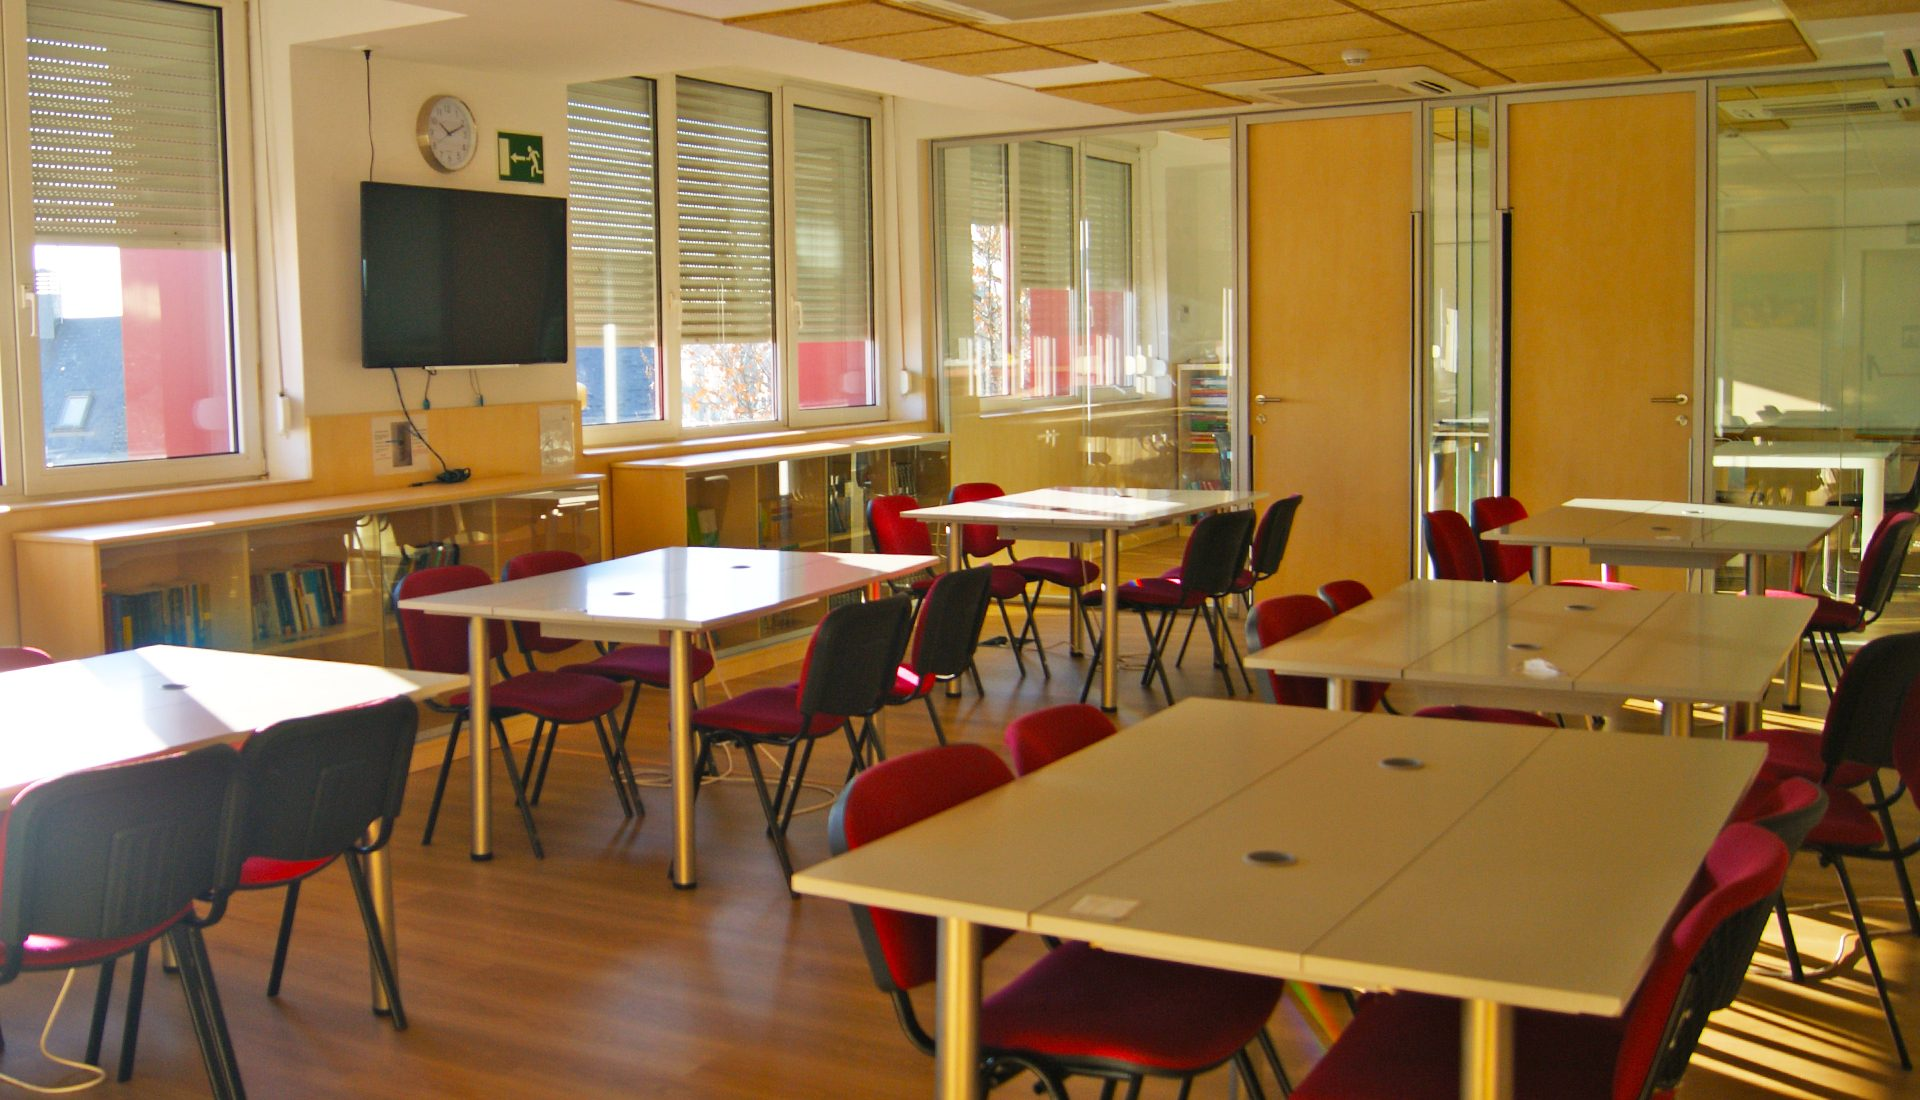 Instalaciones - Learning spaces